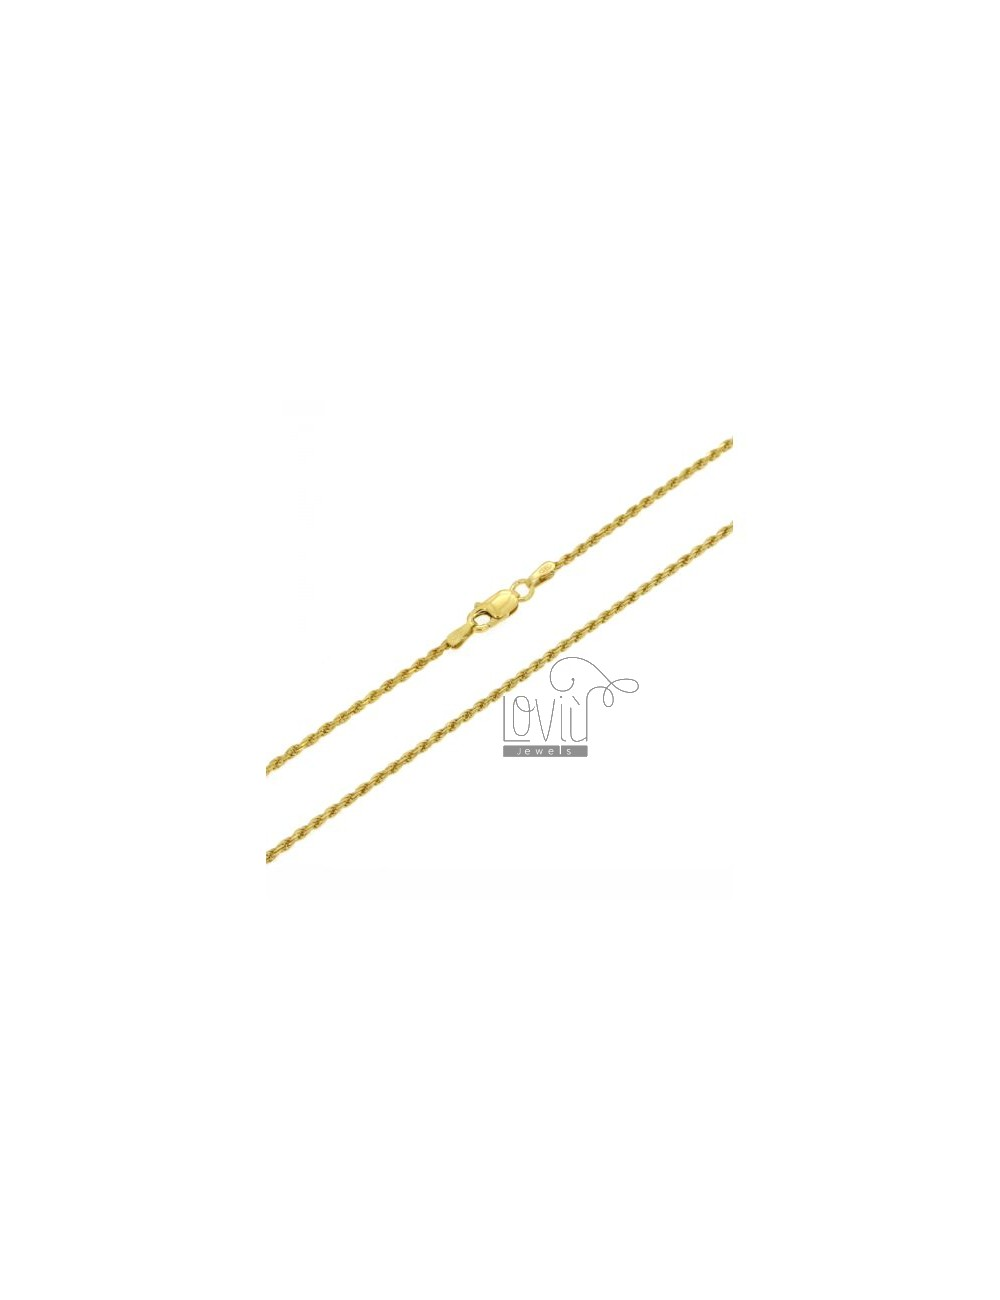 FUNETTA CHAIN 1.6 MM GOLD PLATED 45 CM IN AG TIT 925 ‰